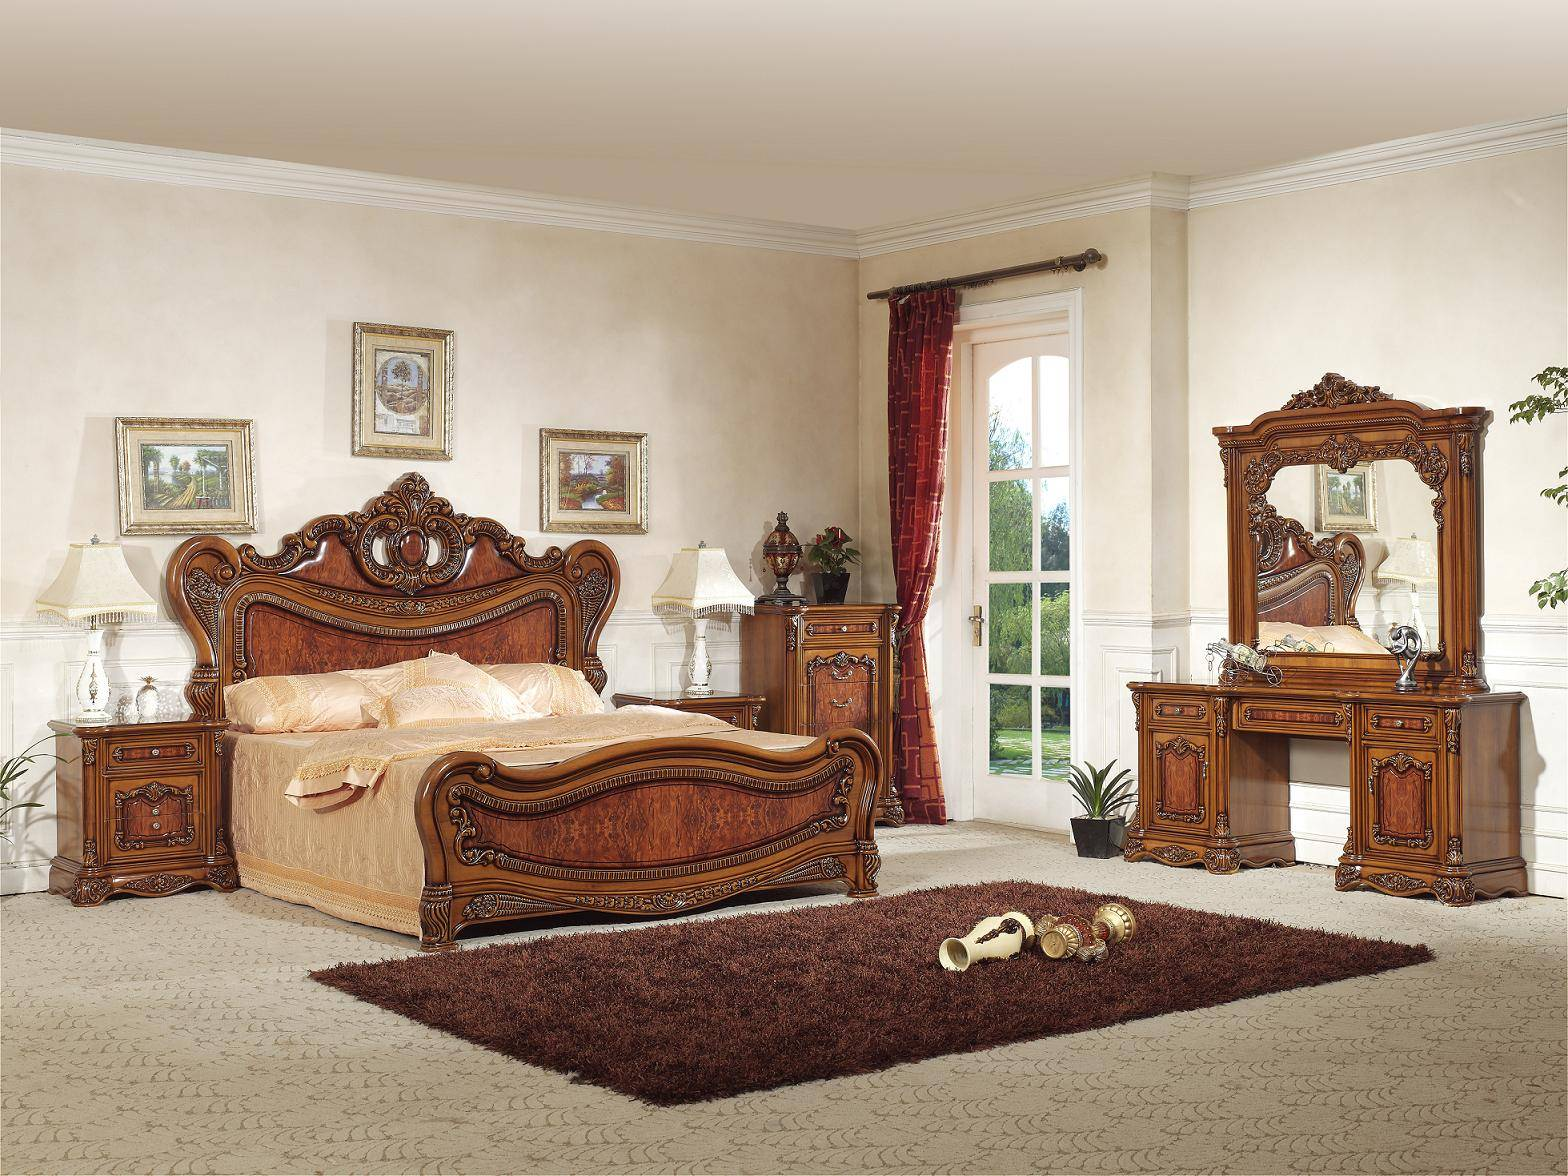 Spanish style bedroom furniture foshan shunde excellence for Spanish style bed